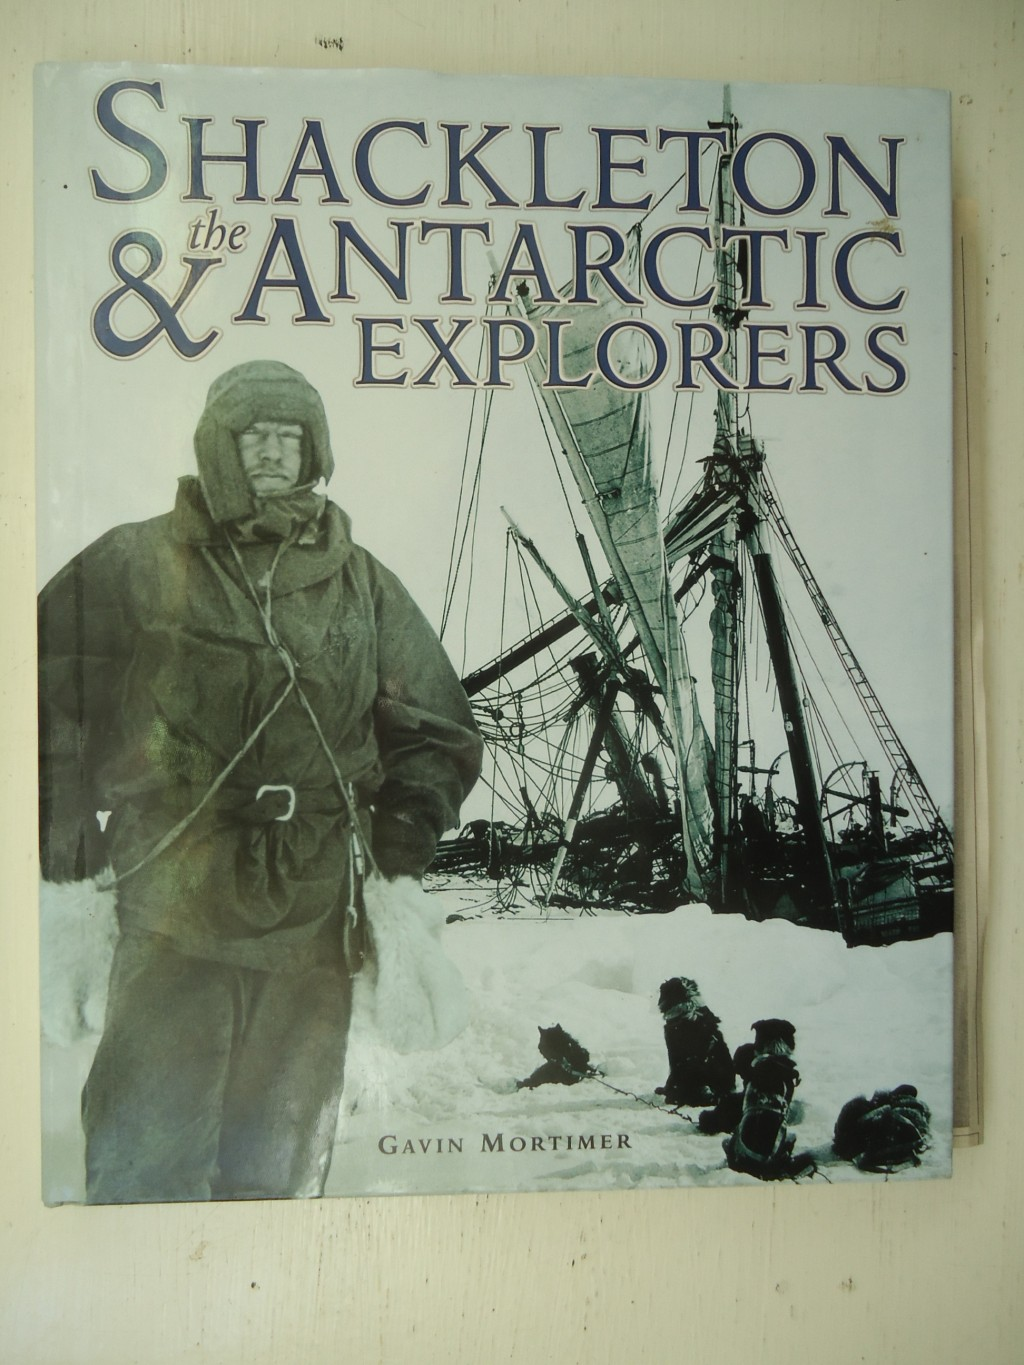 SHACKLETON-THE-ANTARCTIC-EXPLORERS-by-GAVIN-MORTIMER-HBDJ-1999-FIRST-EDITION